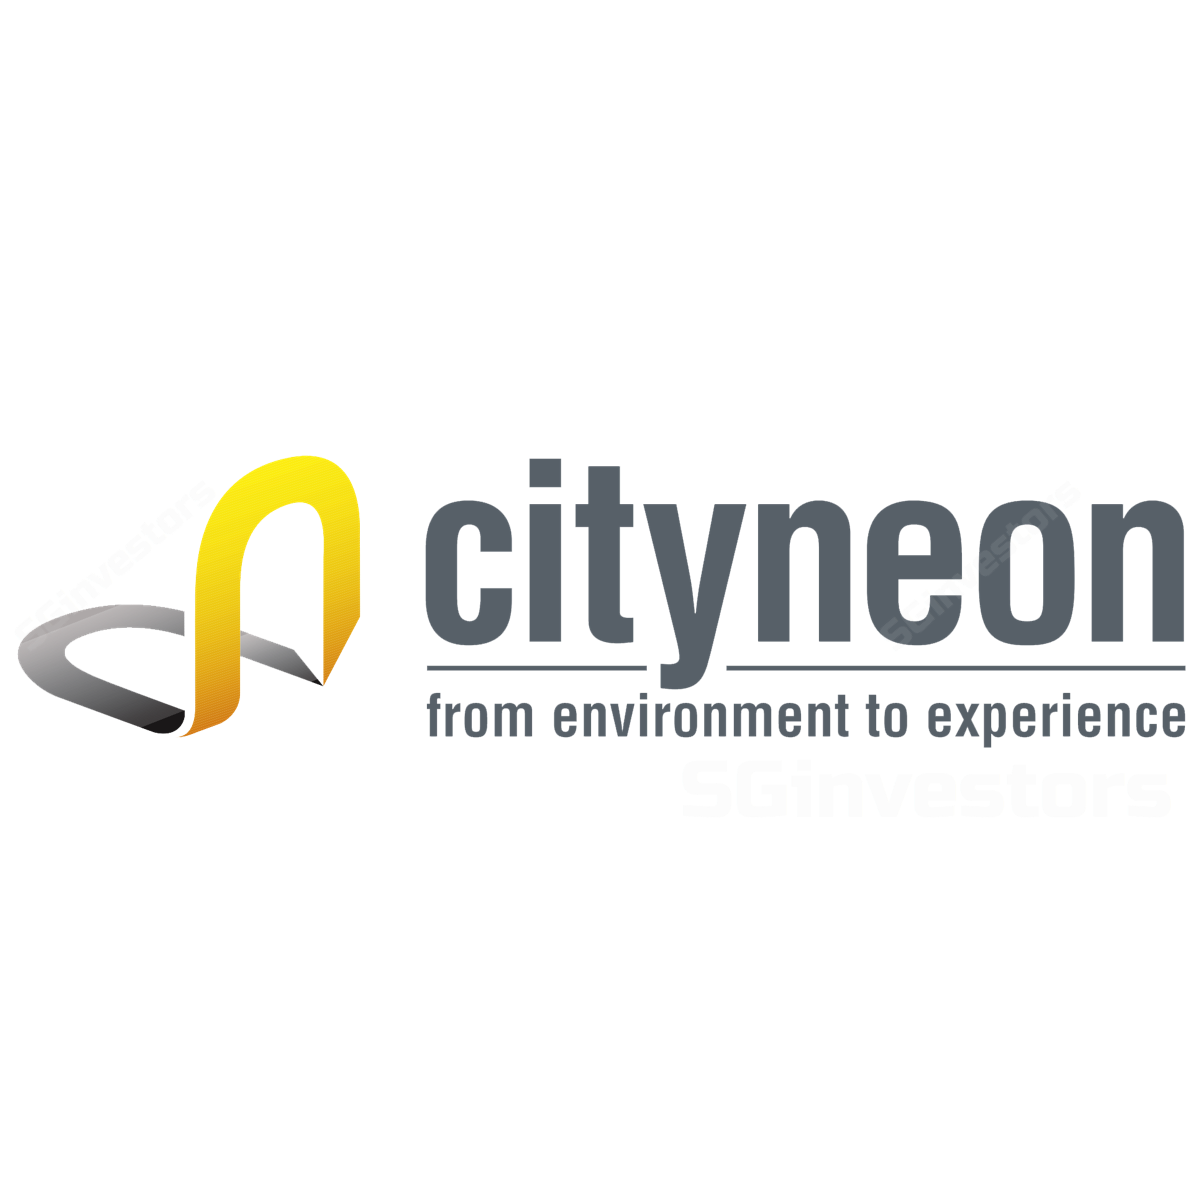 Cityneon Holdings (CITN SP) - UOB Kay Hian 2018-01-09: Delivers On Two Fronts; Looking Forward To A Great 2018